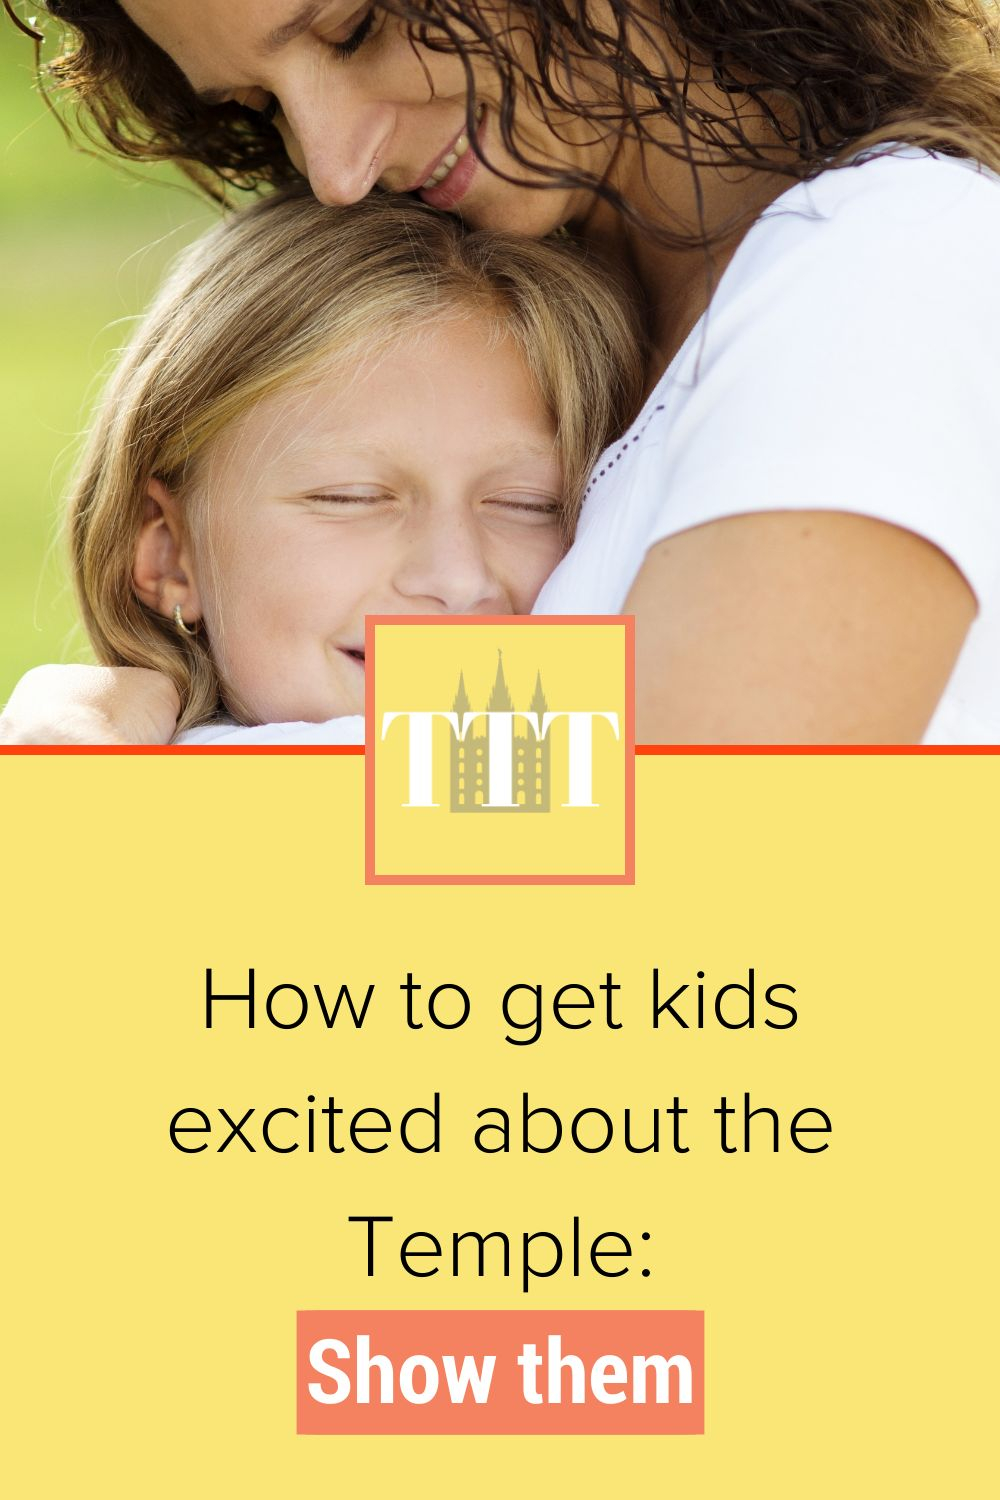 How to get kids excited for the Temple: Show them